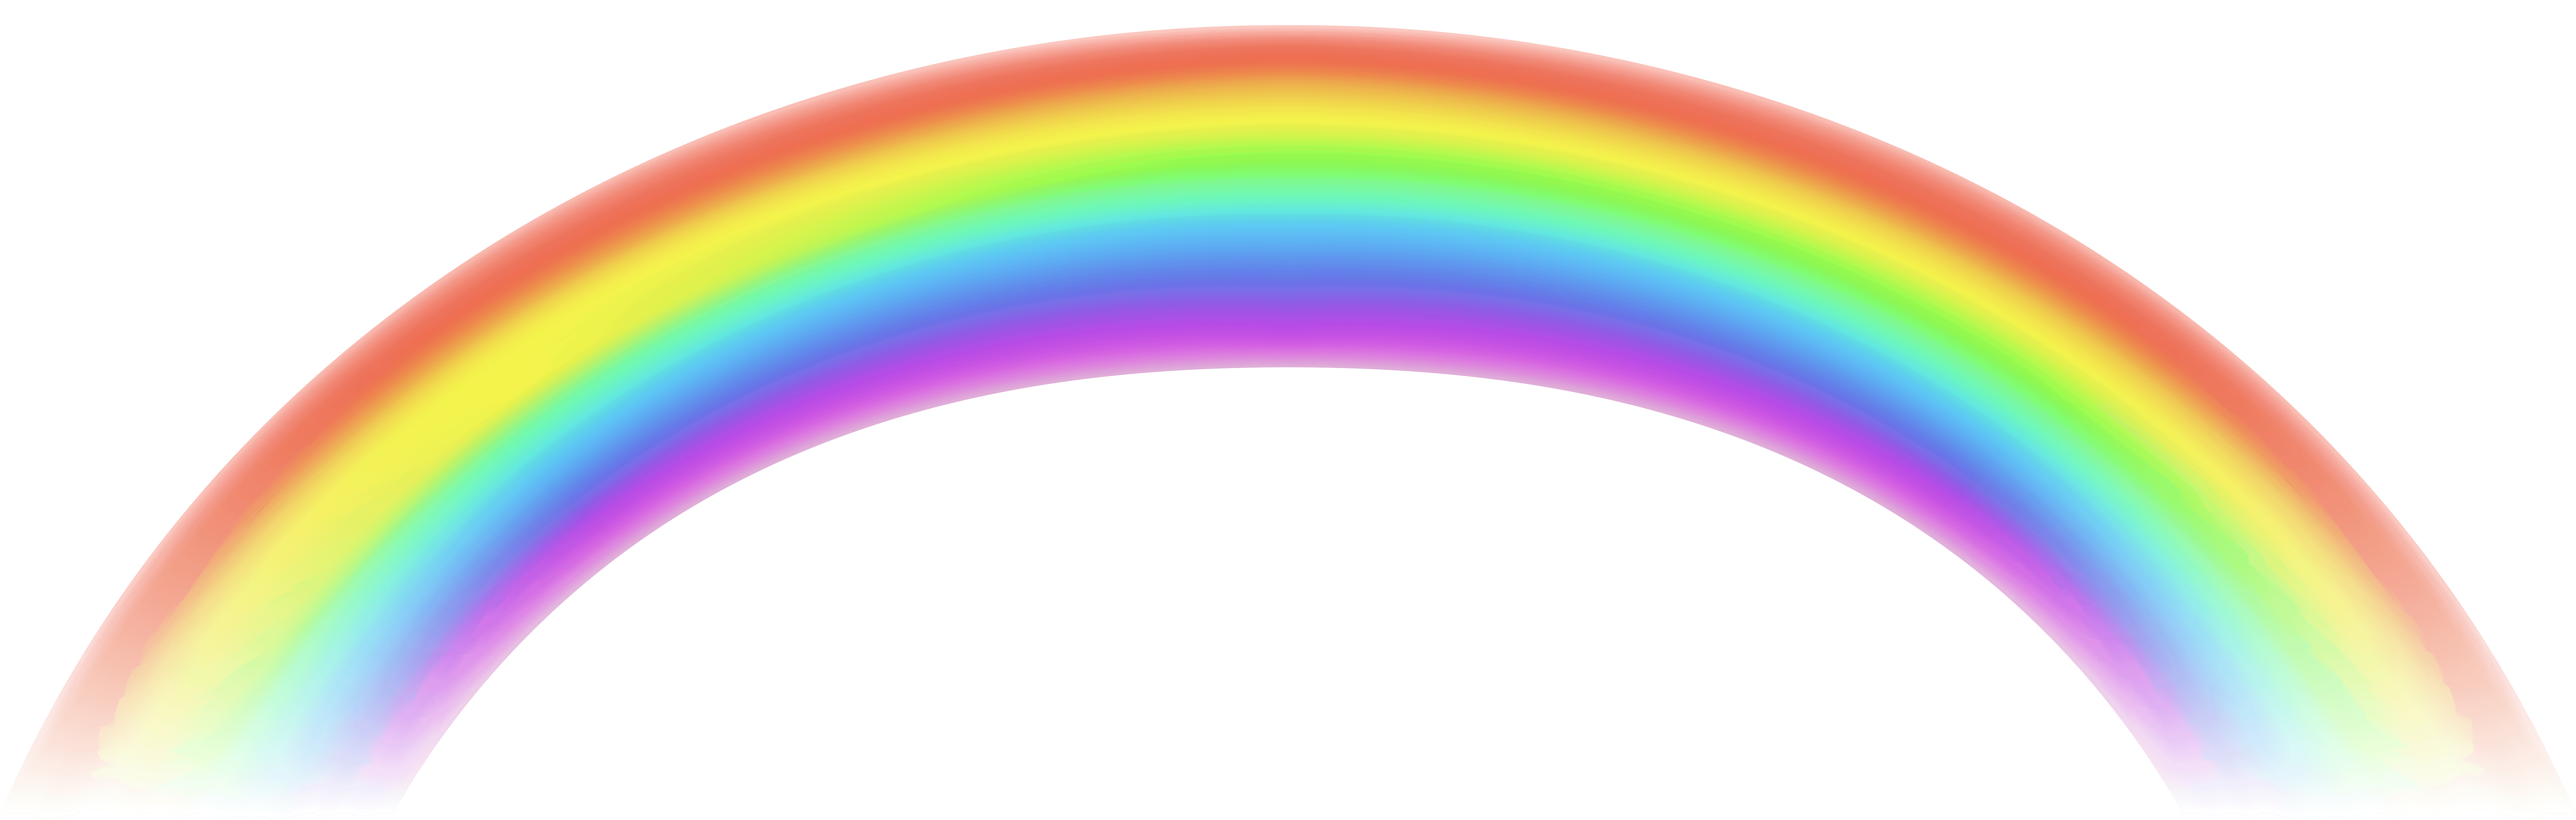 Clipart rainbow transparent background. Free cliparts download clip